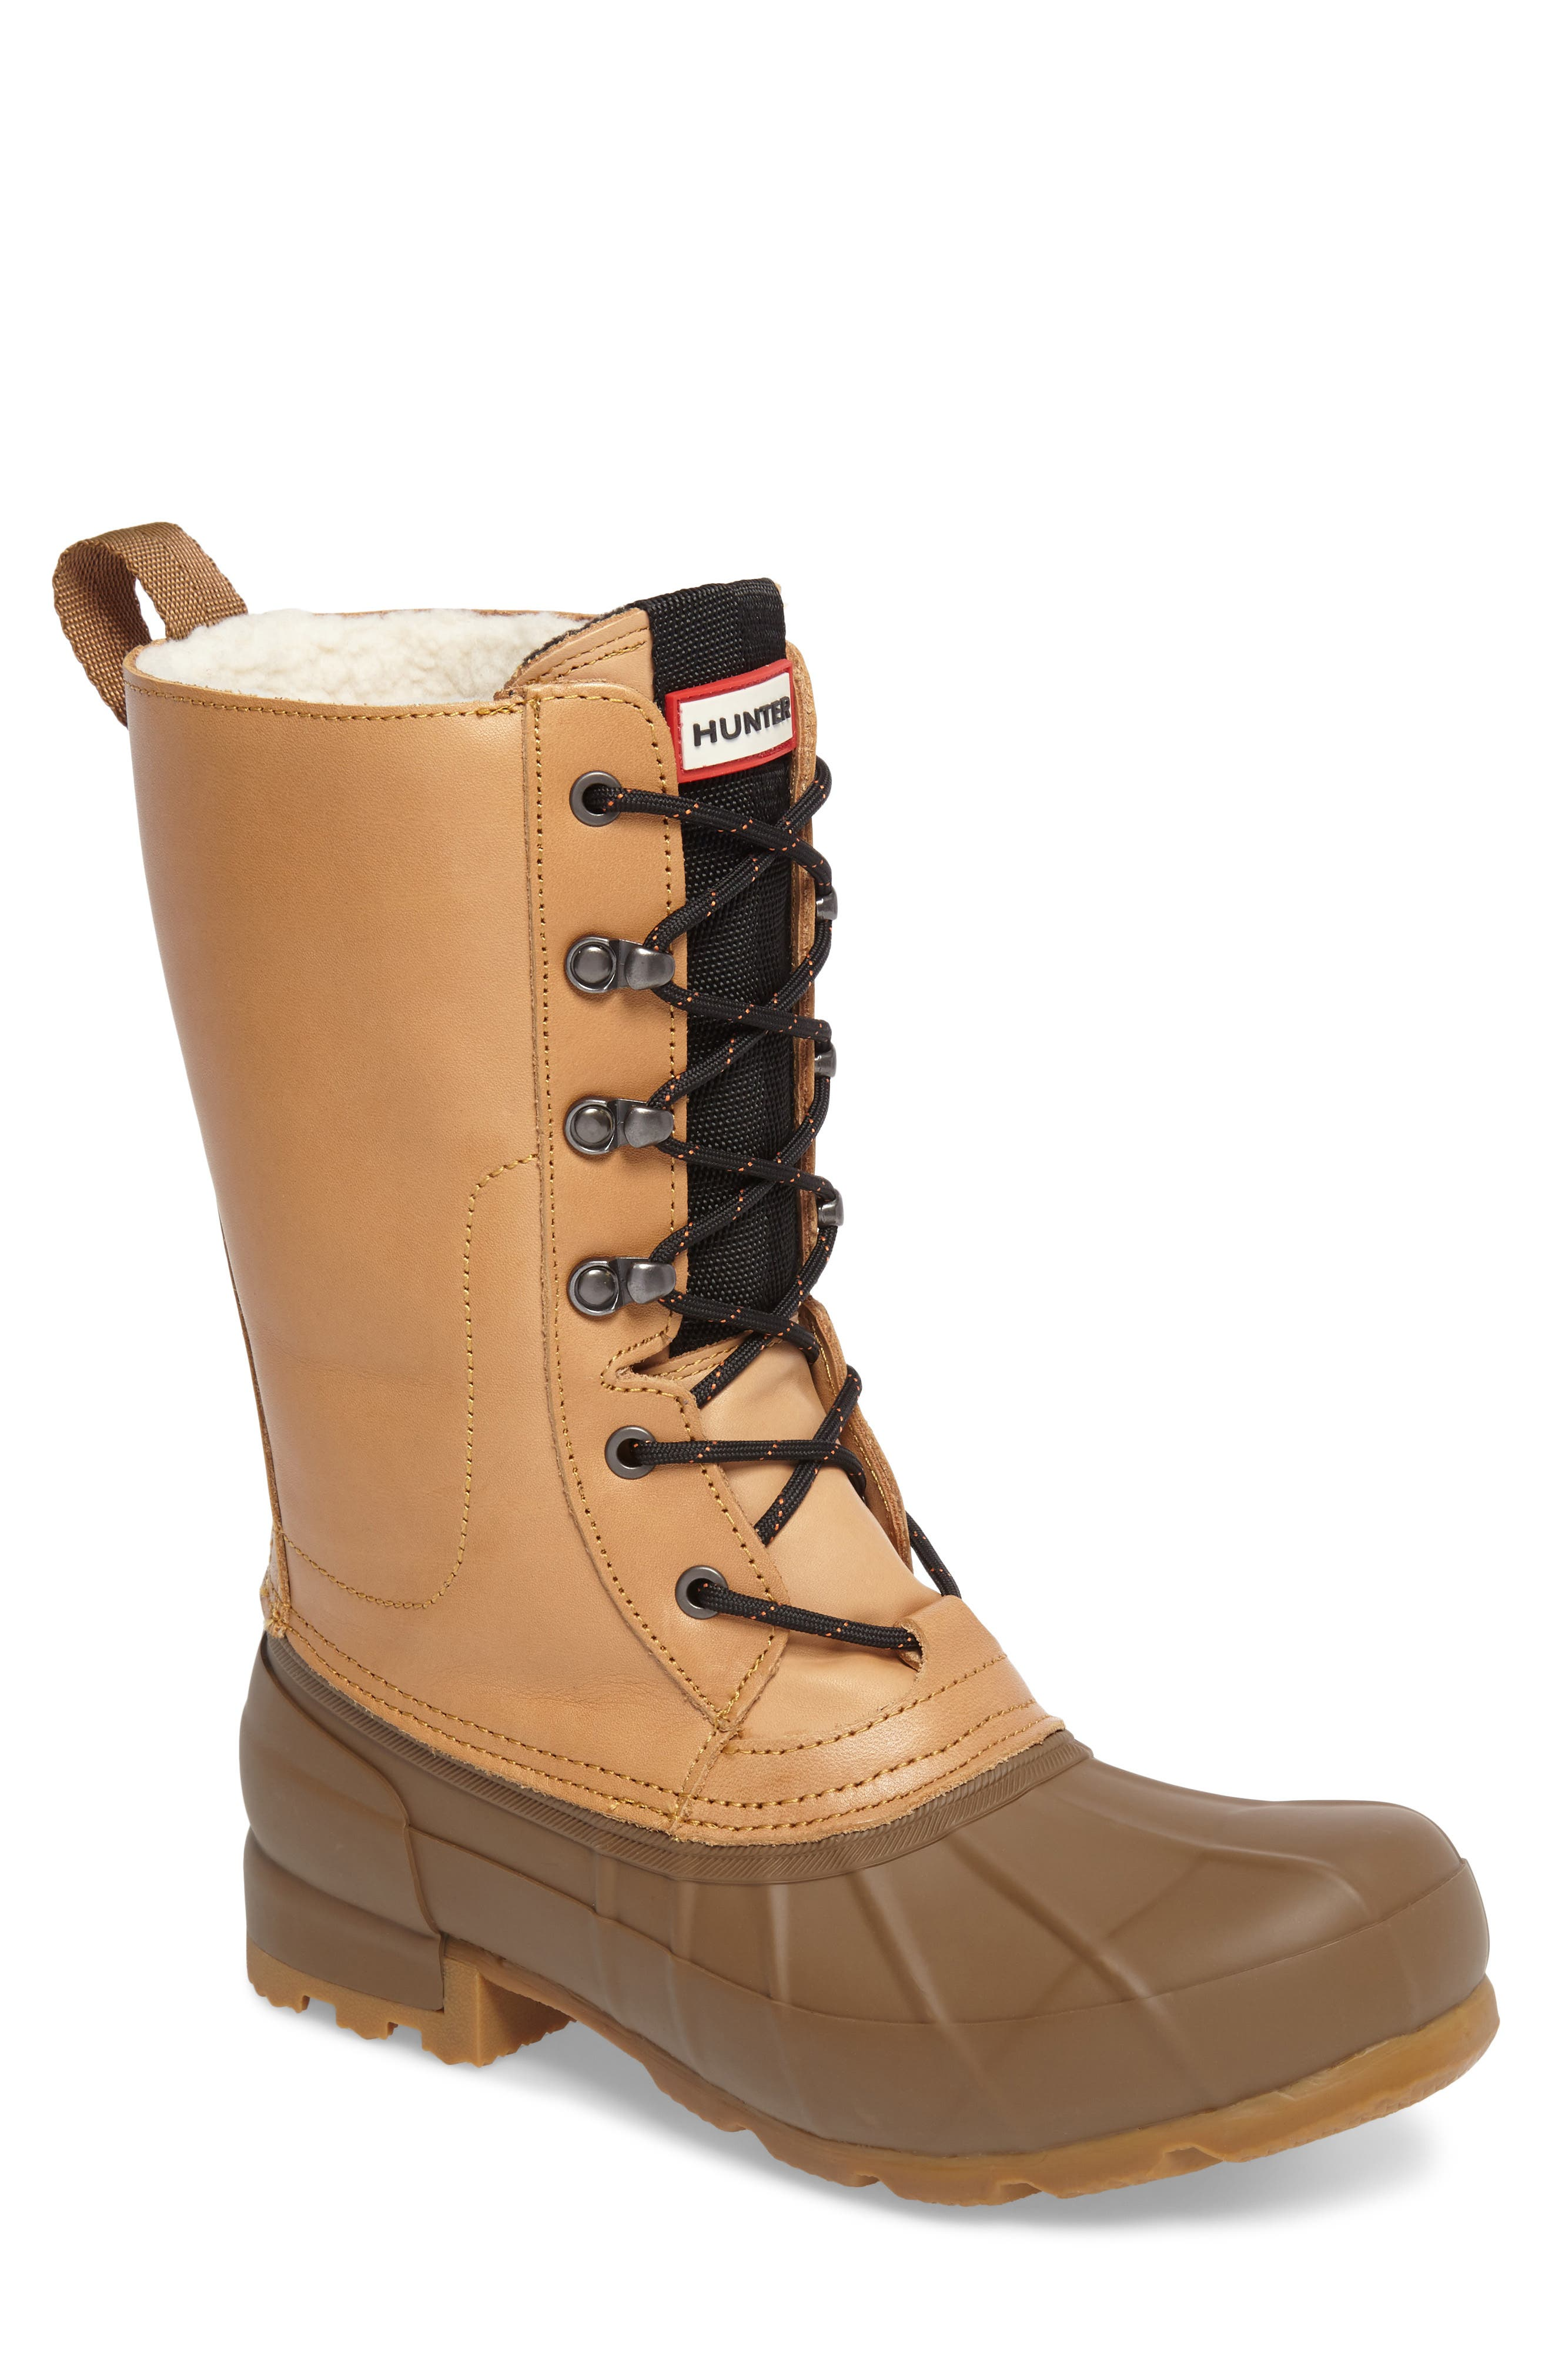 Original Pac Waterproof Boot,                         Main,                         color, PLUTO / LIGHT KHAKI BROWN